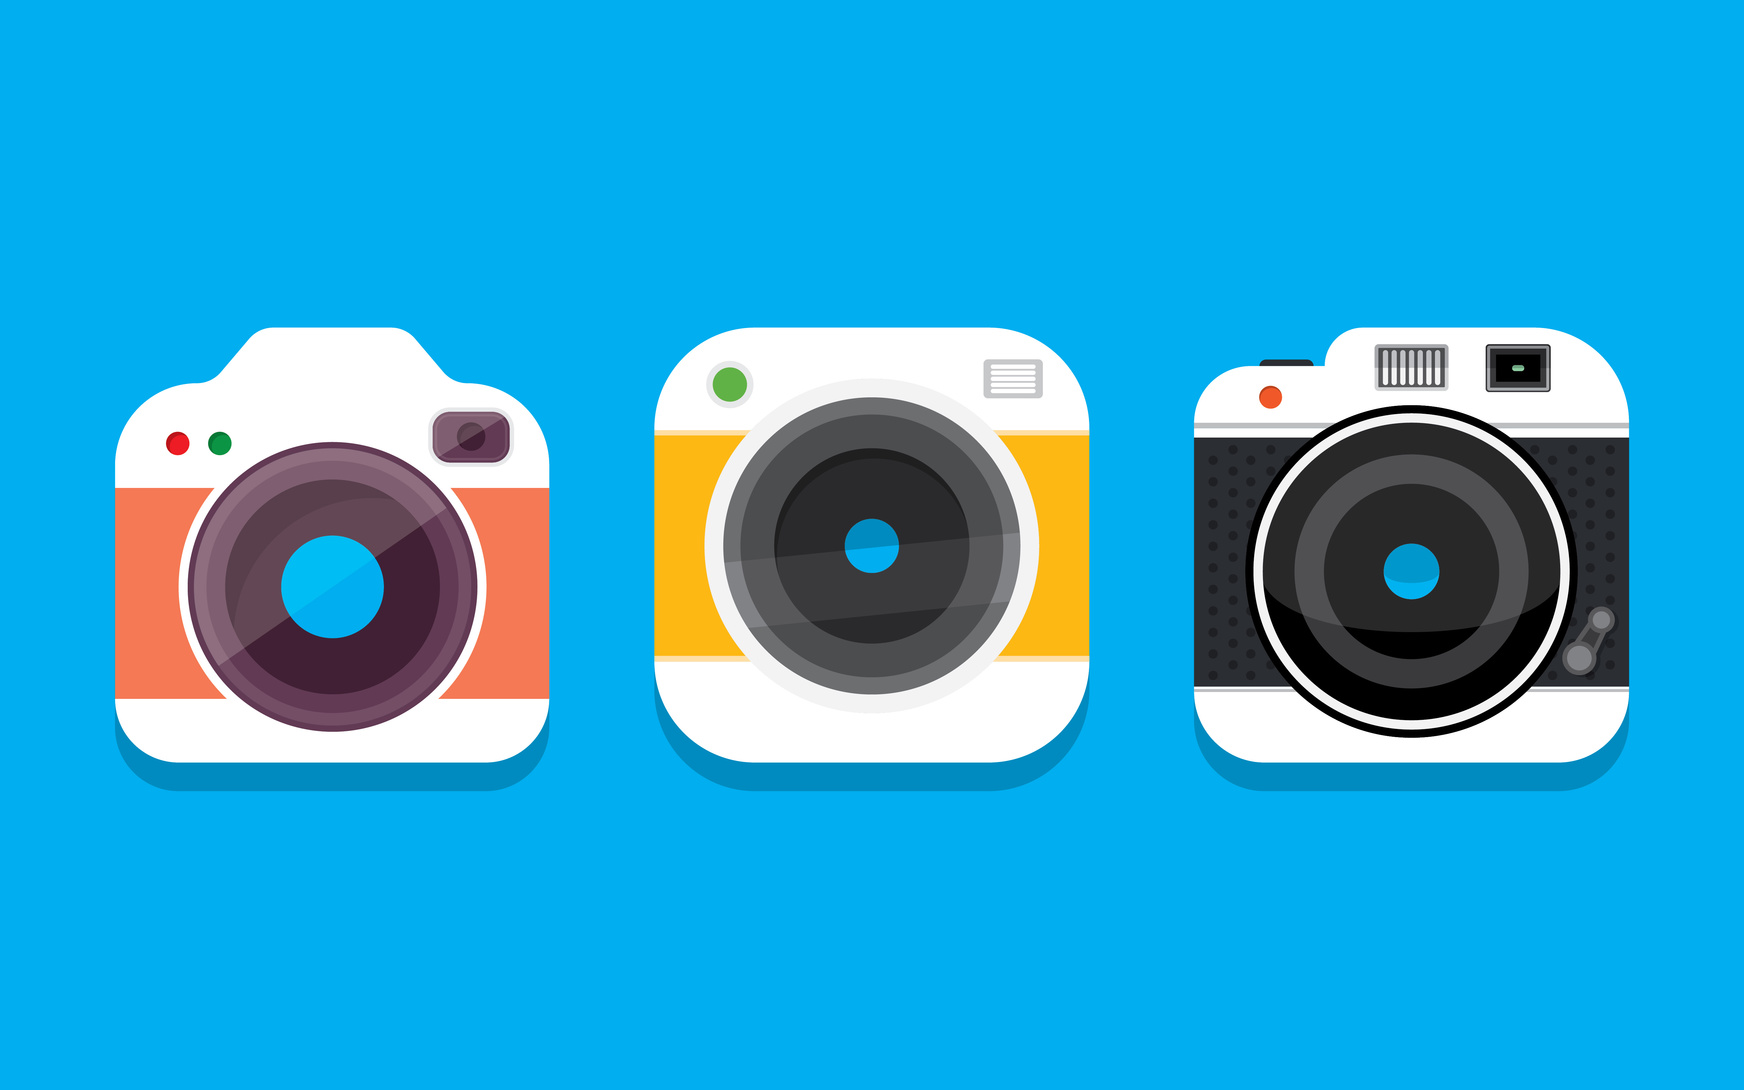 Marketing on Instagram Increases Awareness and Engagement